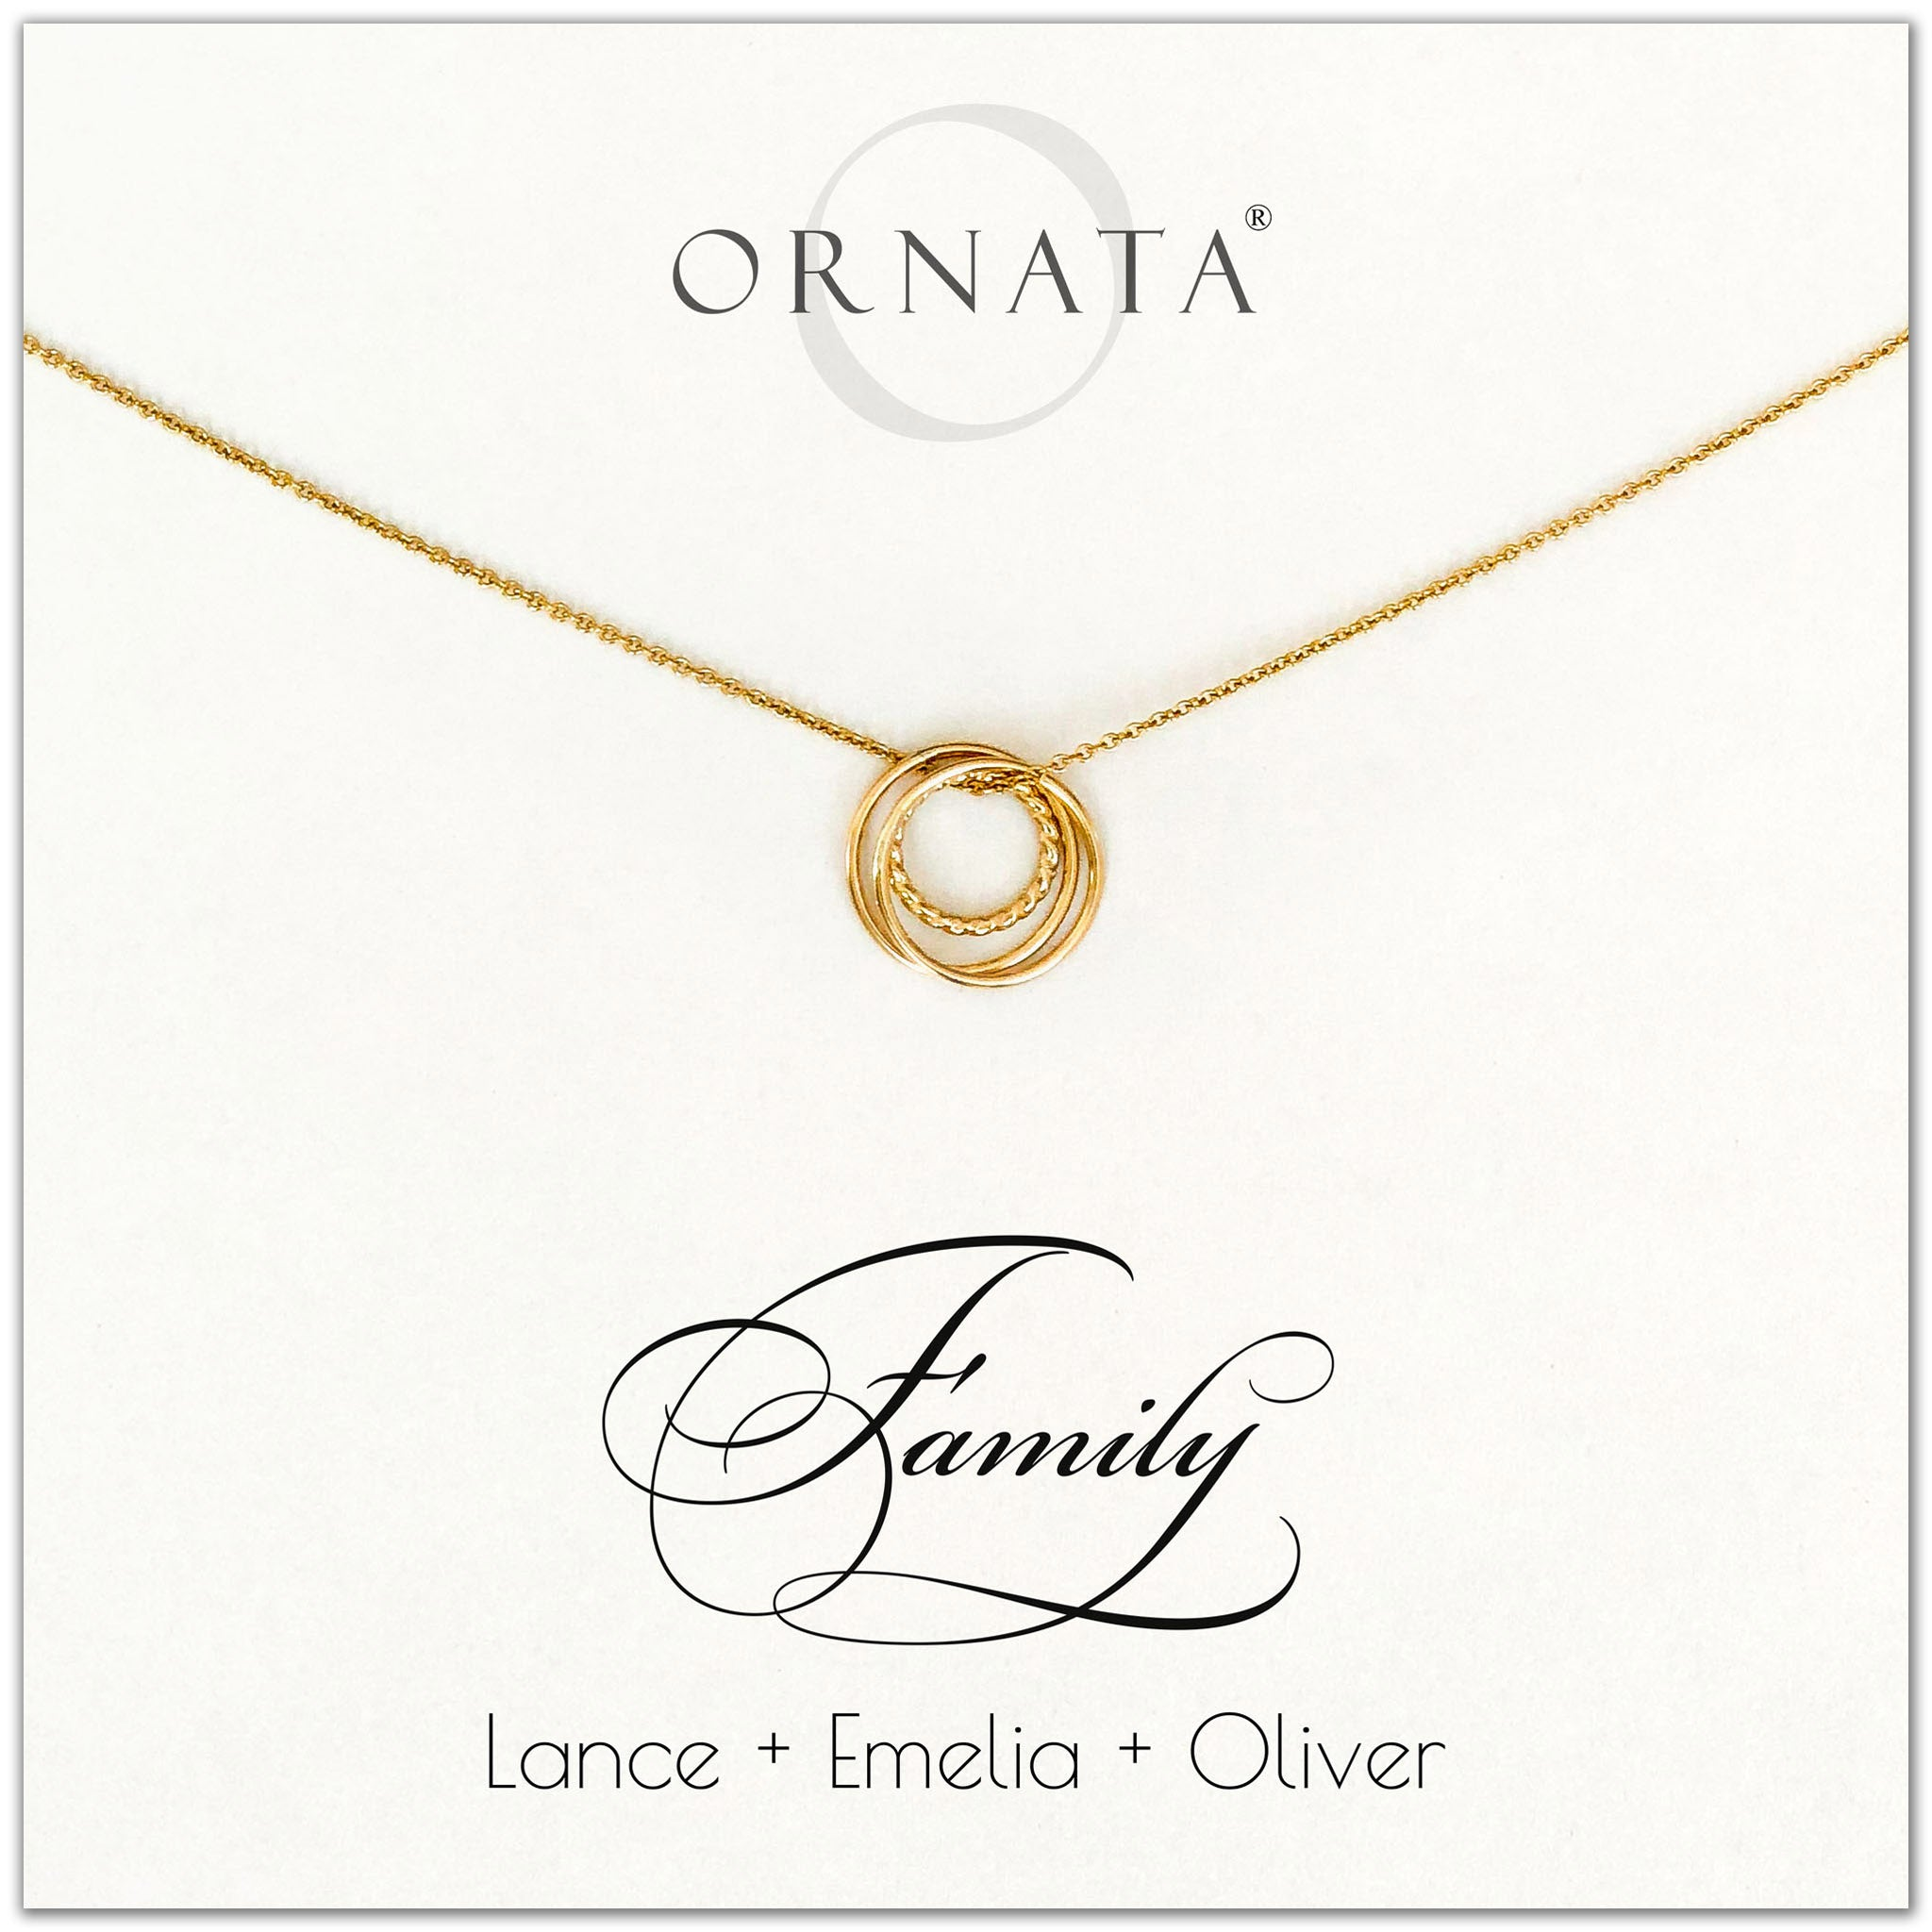 Family of Three Personalized gold necklaces for families of three. Our 14 karat gold filled custom jewelry is a perfect gift for new families, newlyweds, parents, new parents, friends, sisters, mothers, and grandmothers. Family jewelry is also a good gift for Mother's Day.